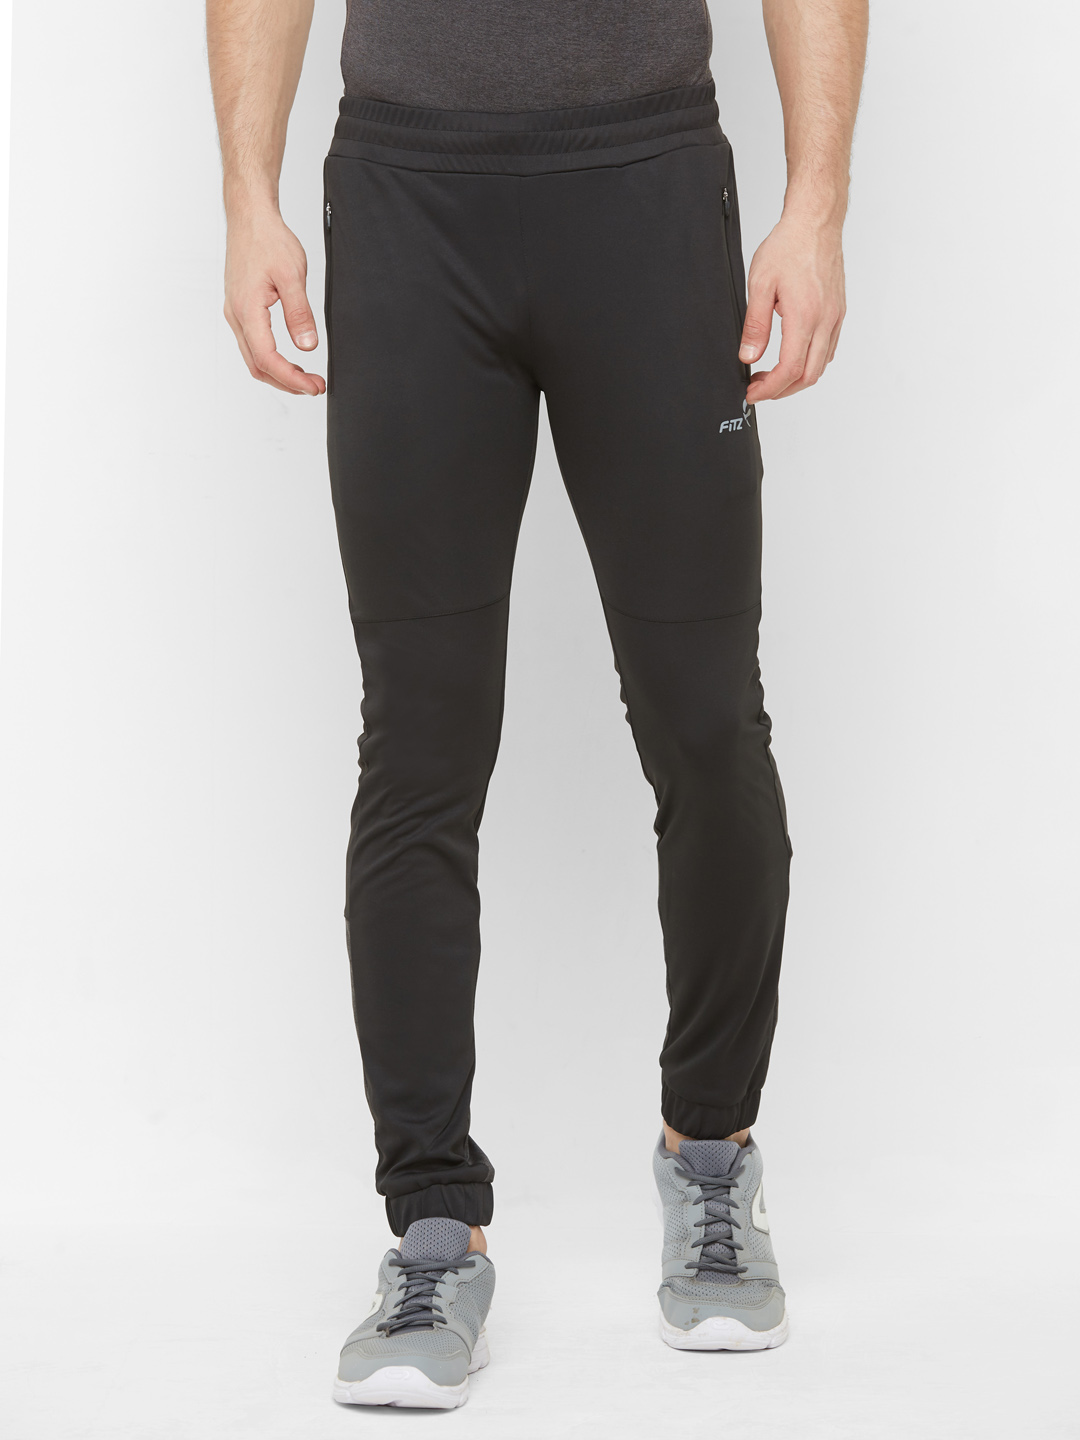 FITZ   Fitz Polyester Joggers For Men